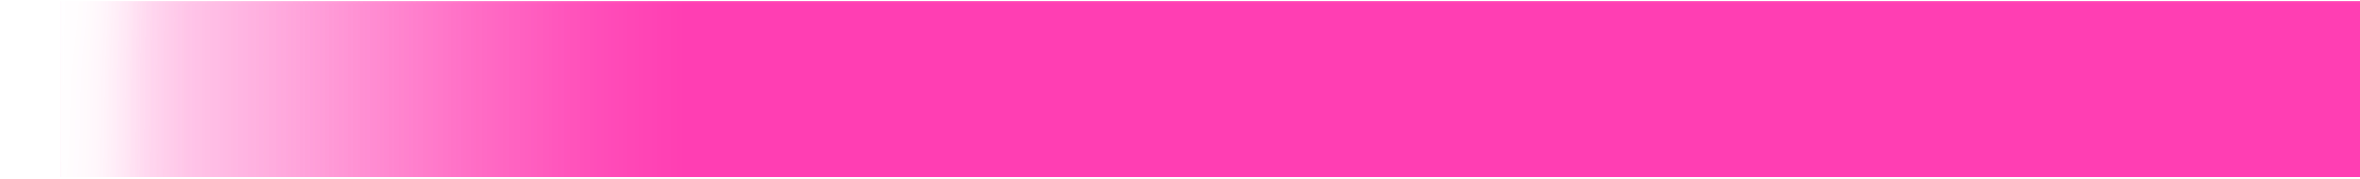 Light Up Pink Banner